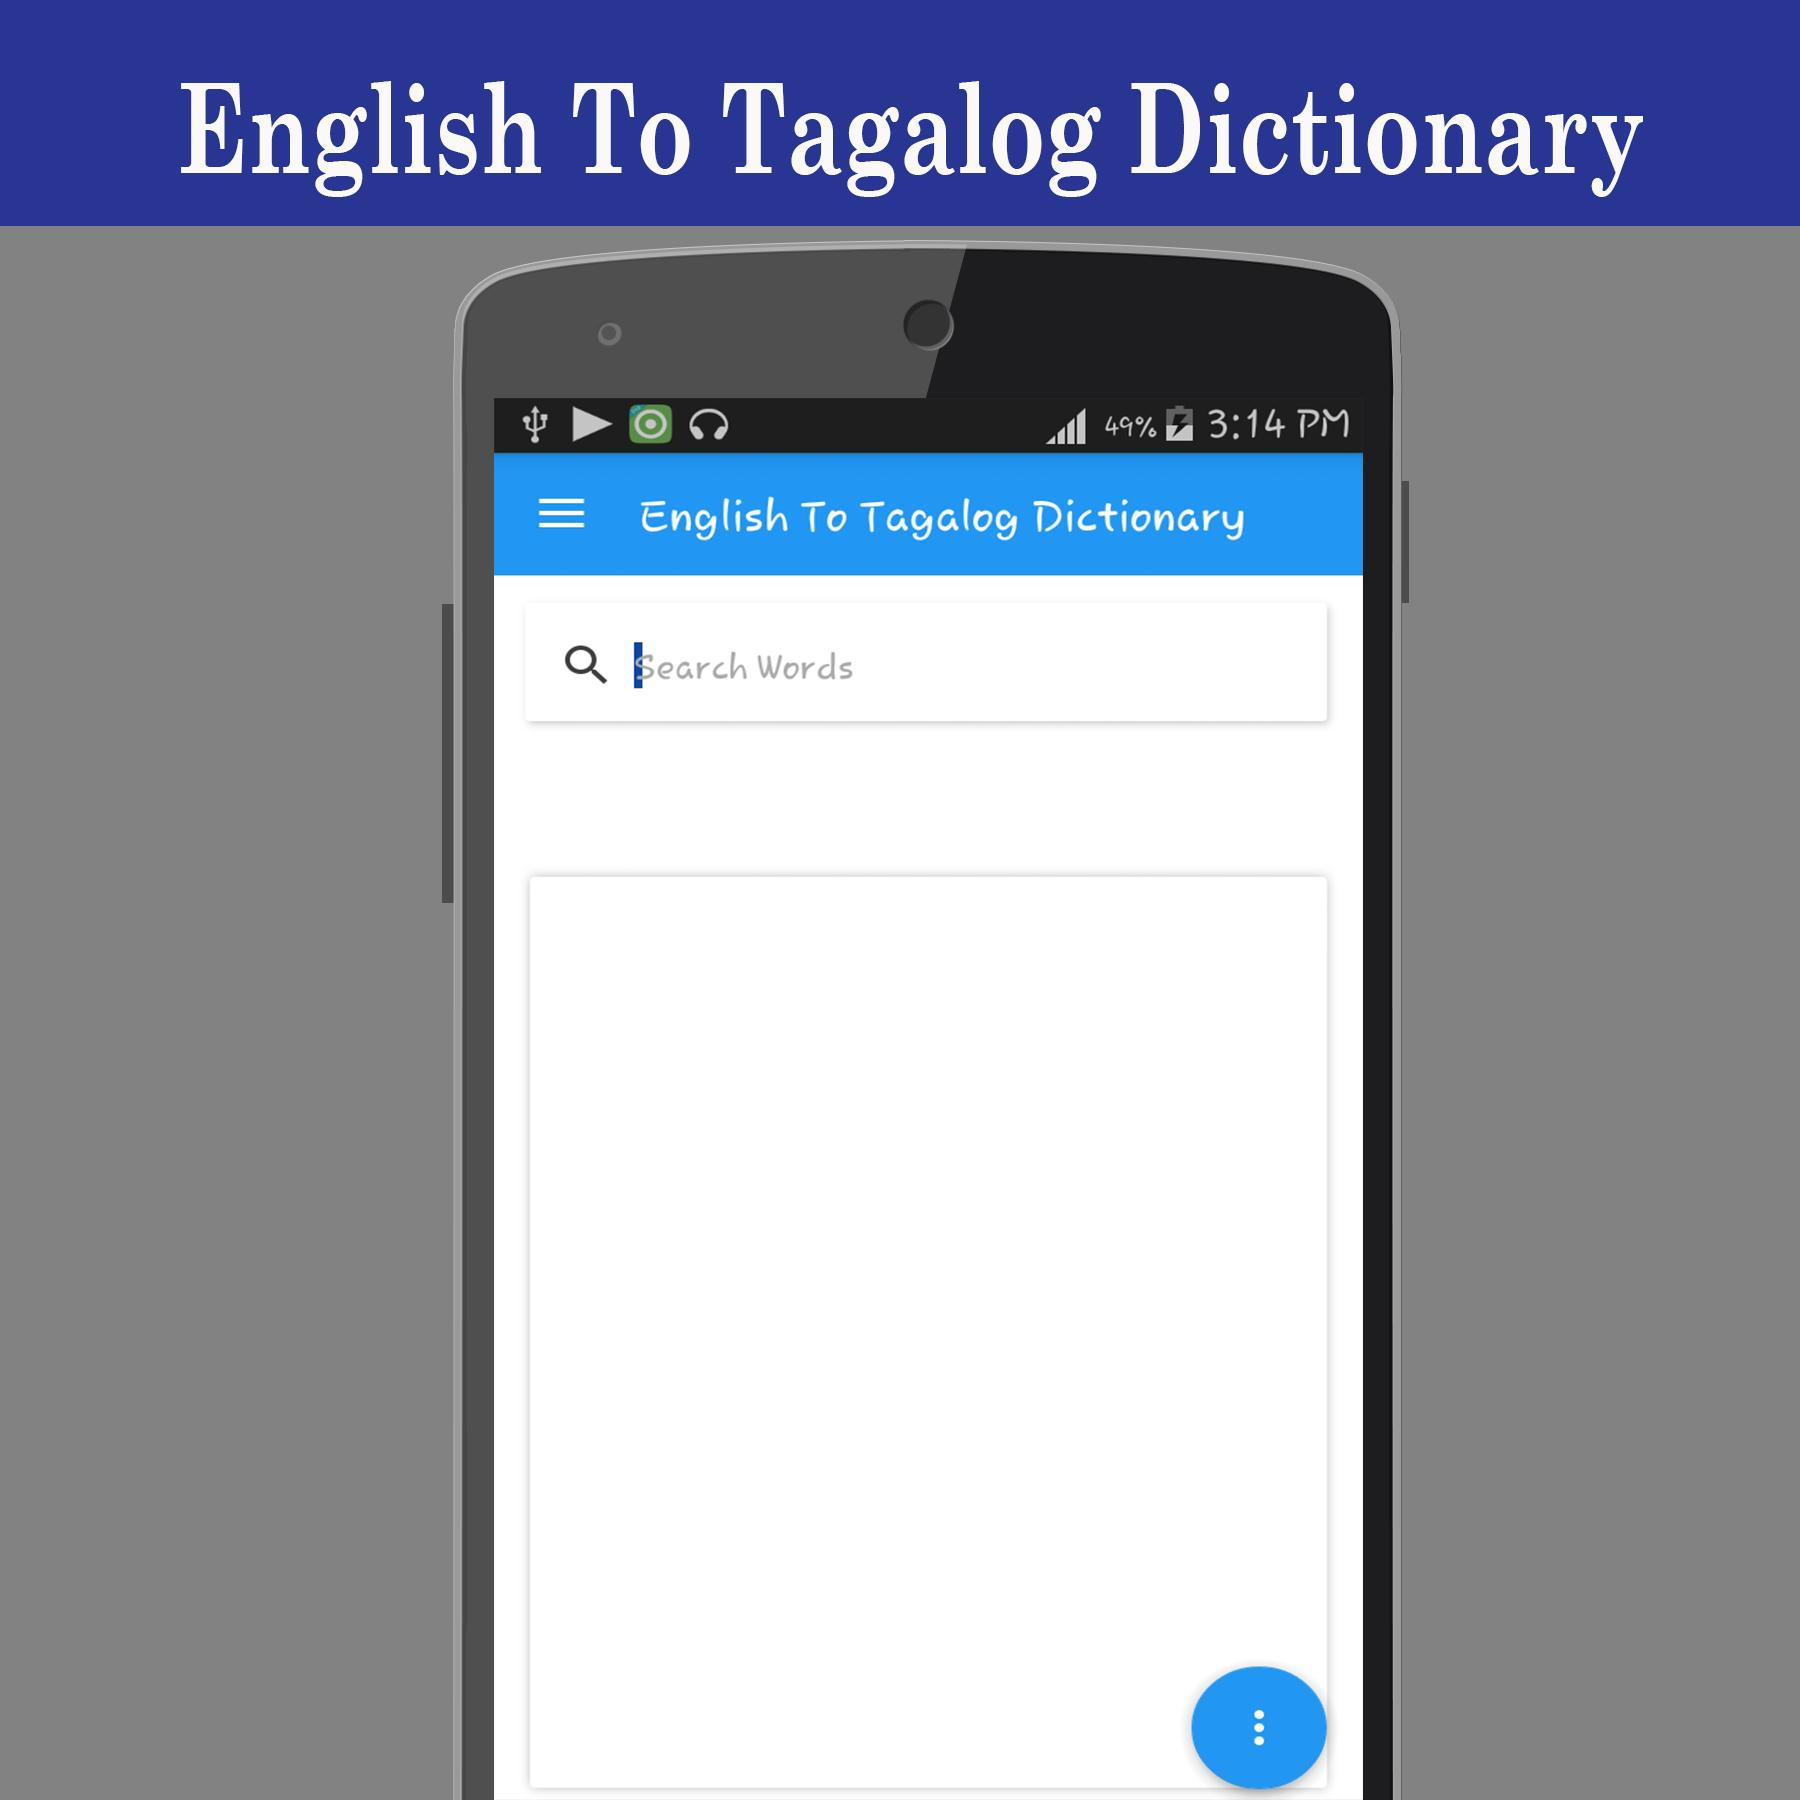 English To Tagalog Dictionary for Android - APK Download